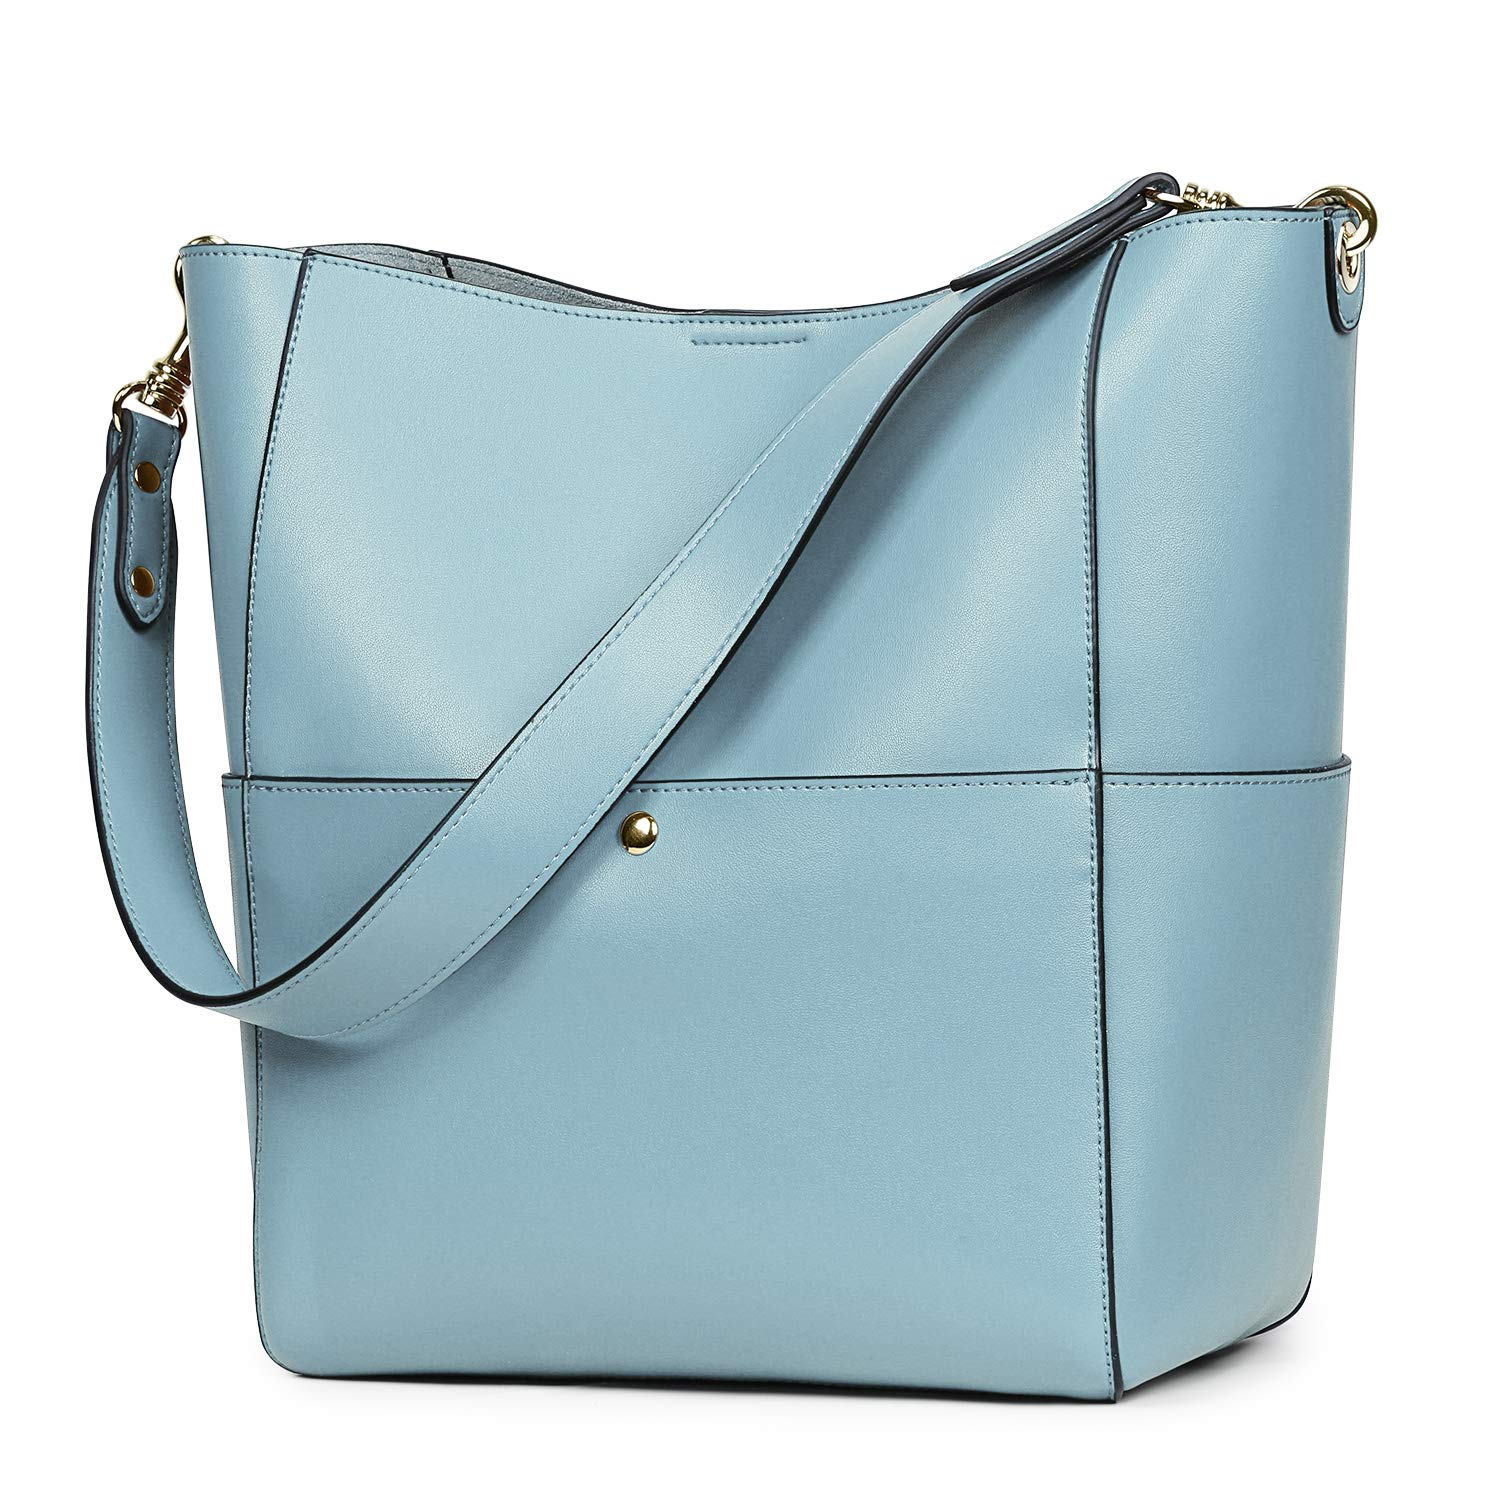 S-ZONE Women's Vintage Leather Bucket Tote Shoulder Bag Hobo Handbag Purse (Light Blue-Upgraded Version)